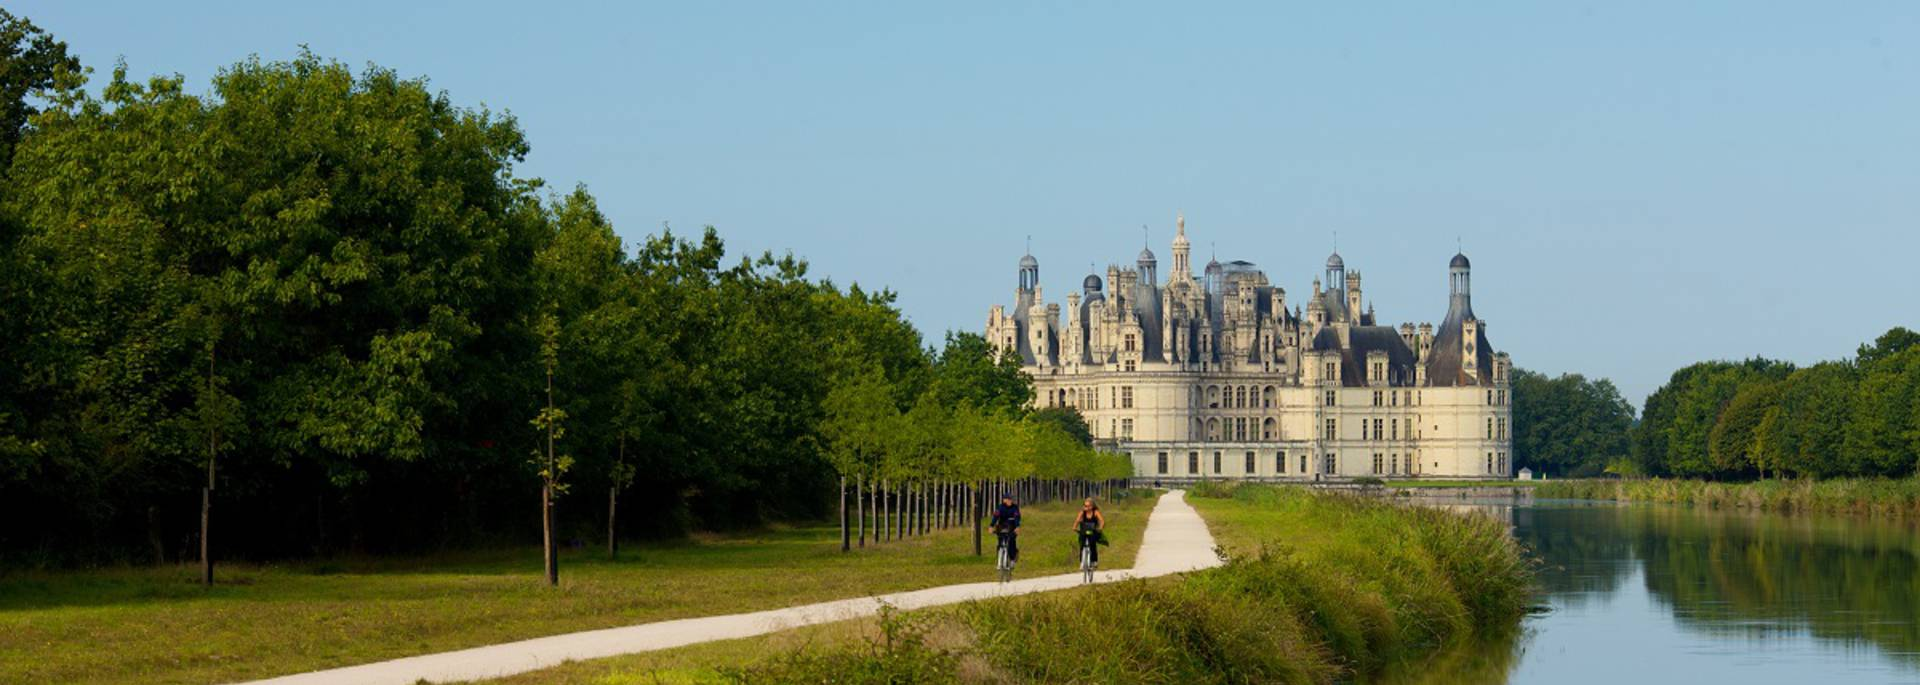 Le Domaine National de Chambord